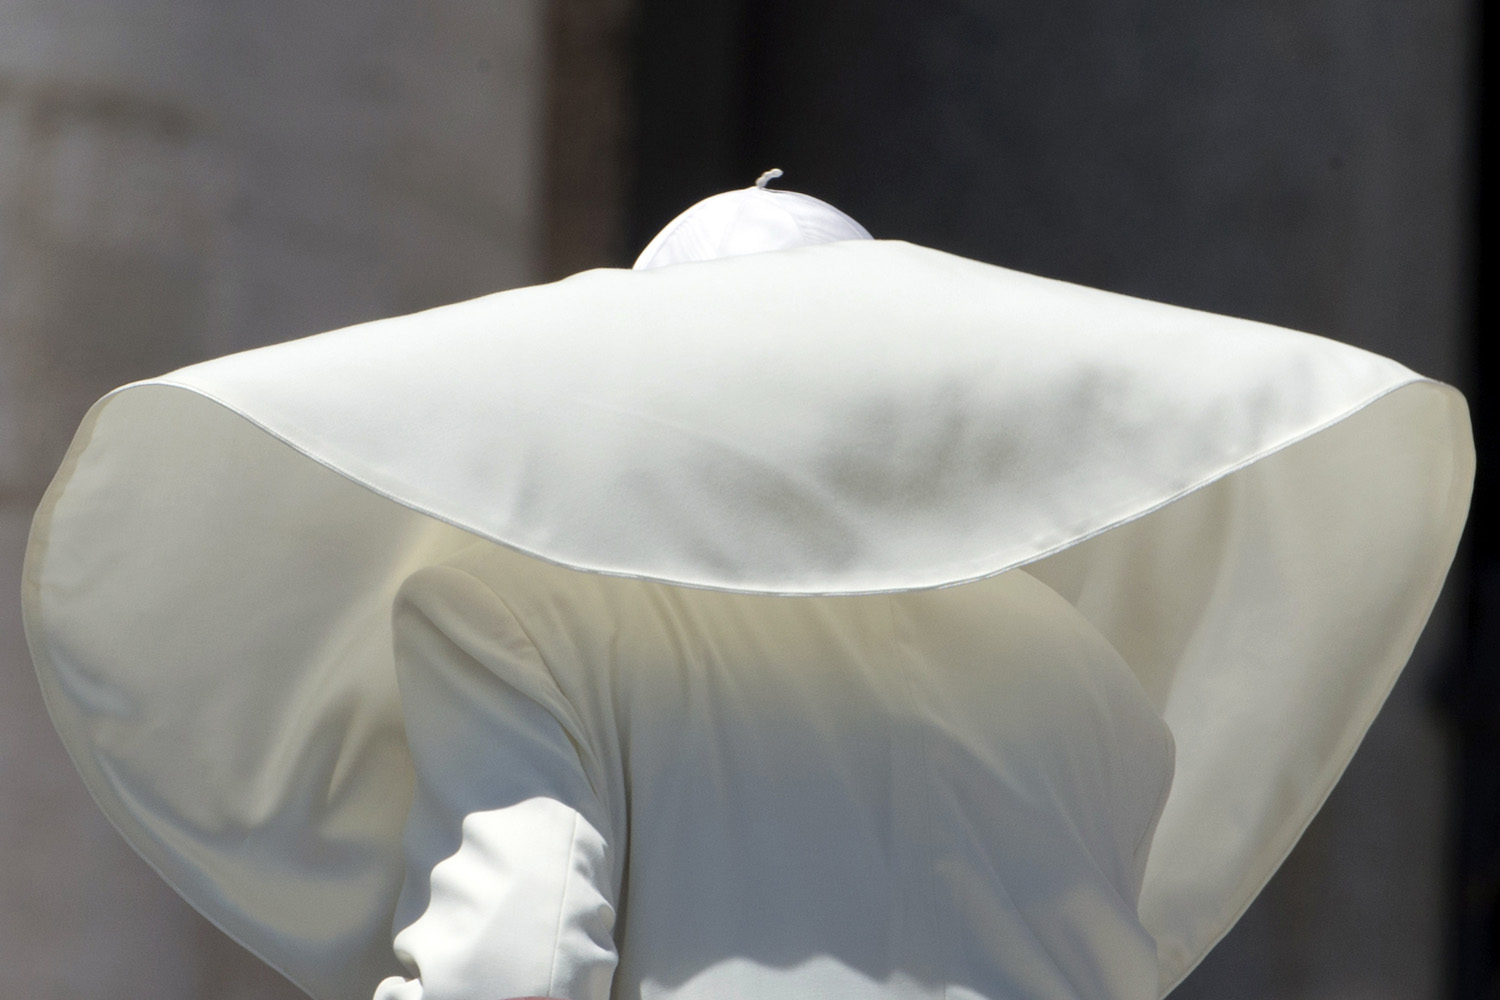 A gust of wind blows the pope's mantle.